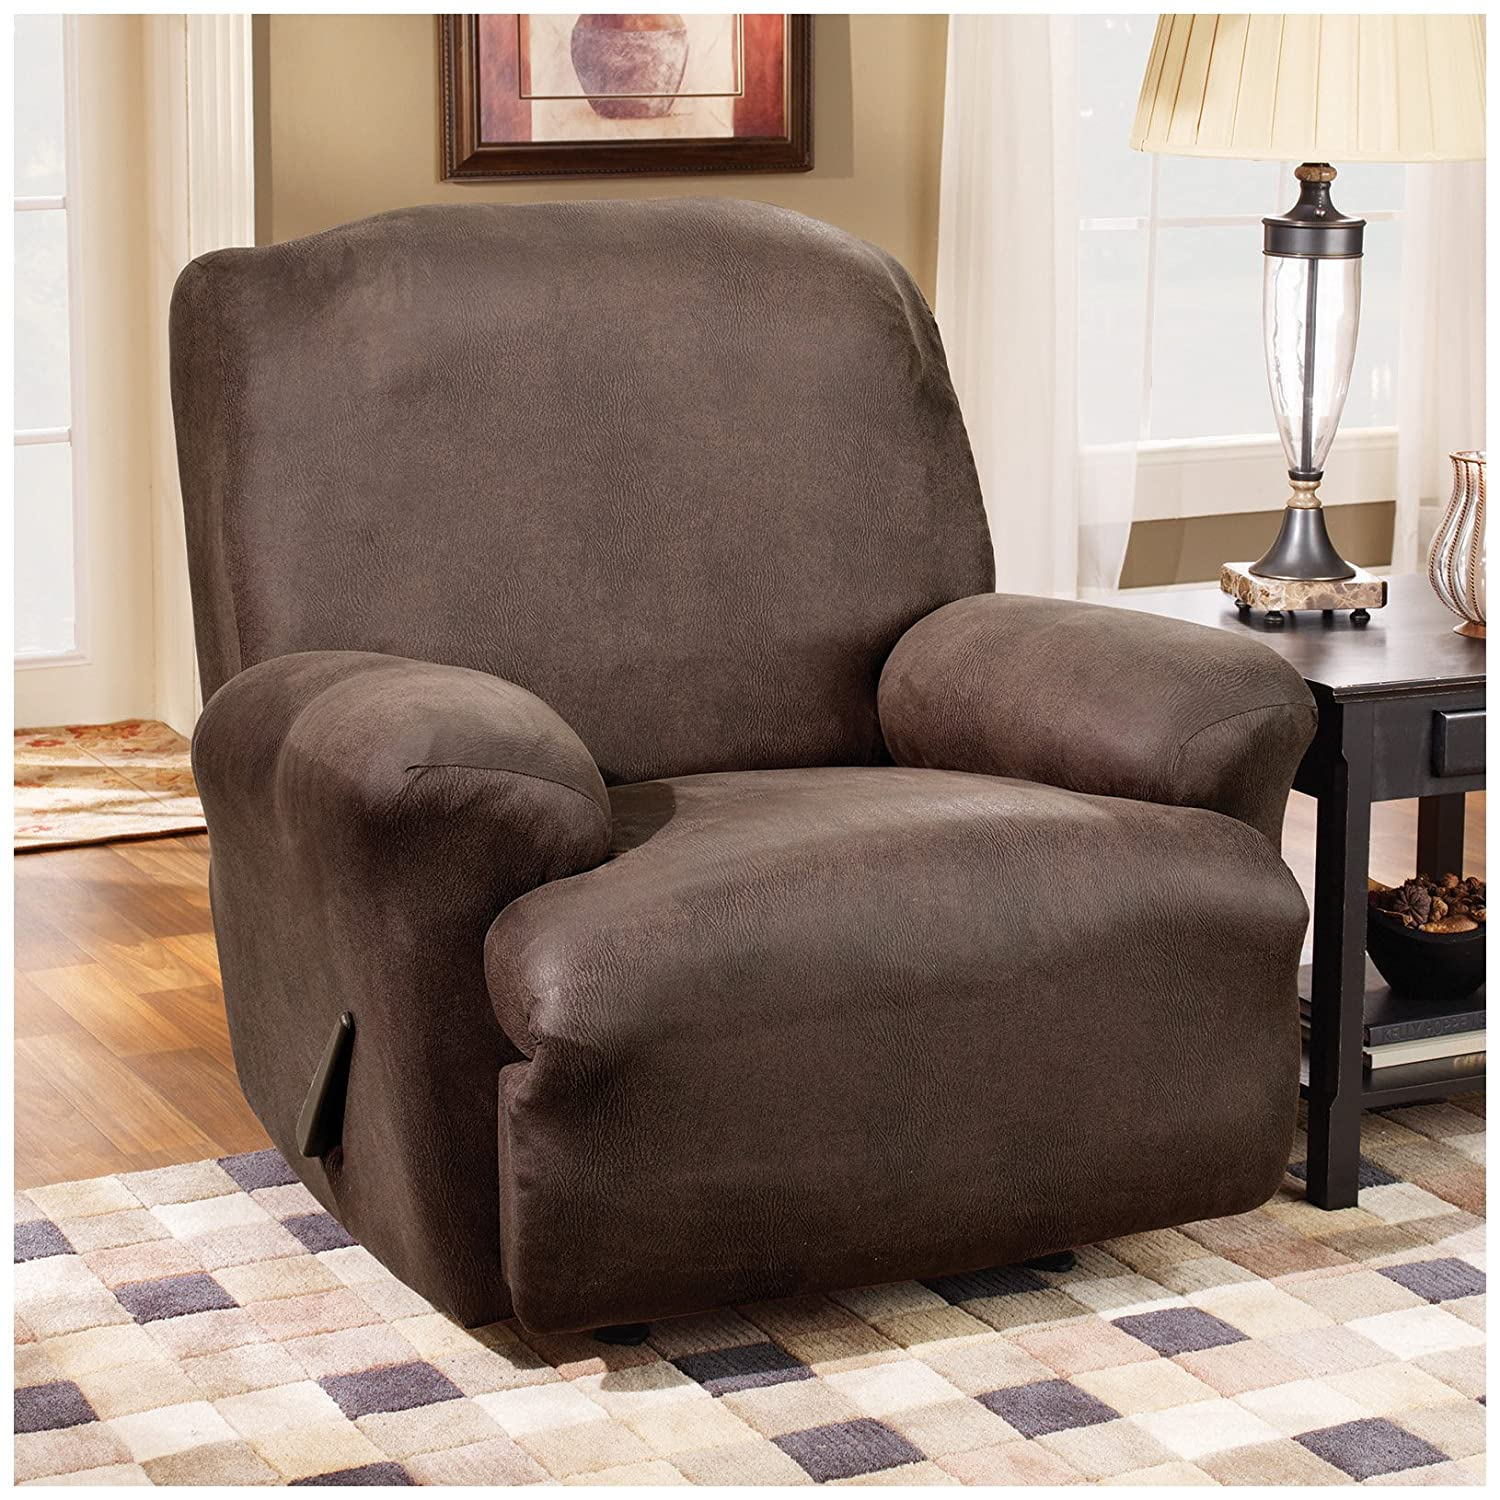 Sure Fit Stretch Leather Recliner Slipcover Brown [Misc ] Amazon